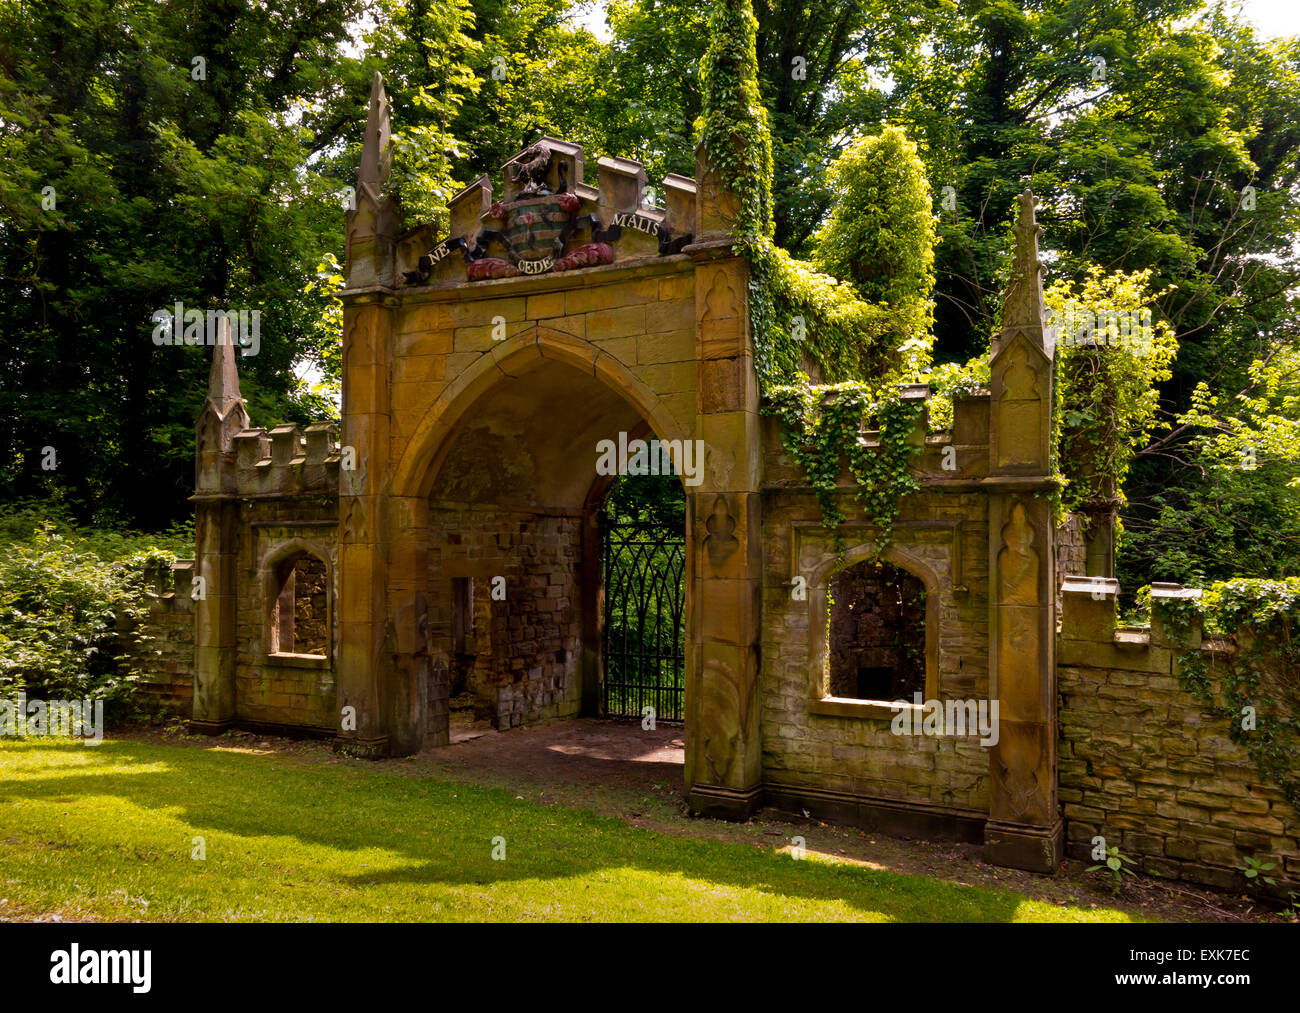 The Gothick Archway in the garden at Renishaw Hall Derbyshire England UK - Stock Image